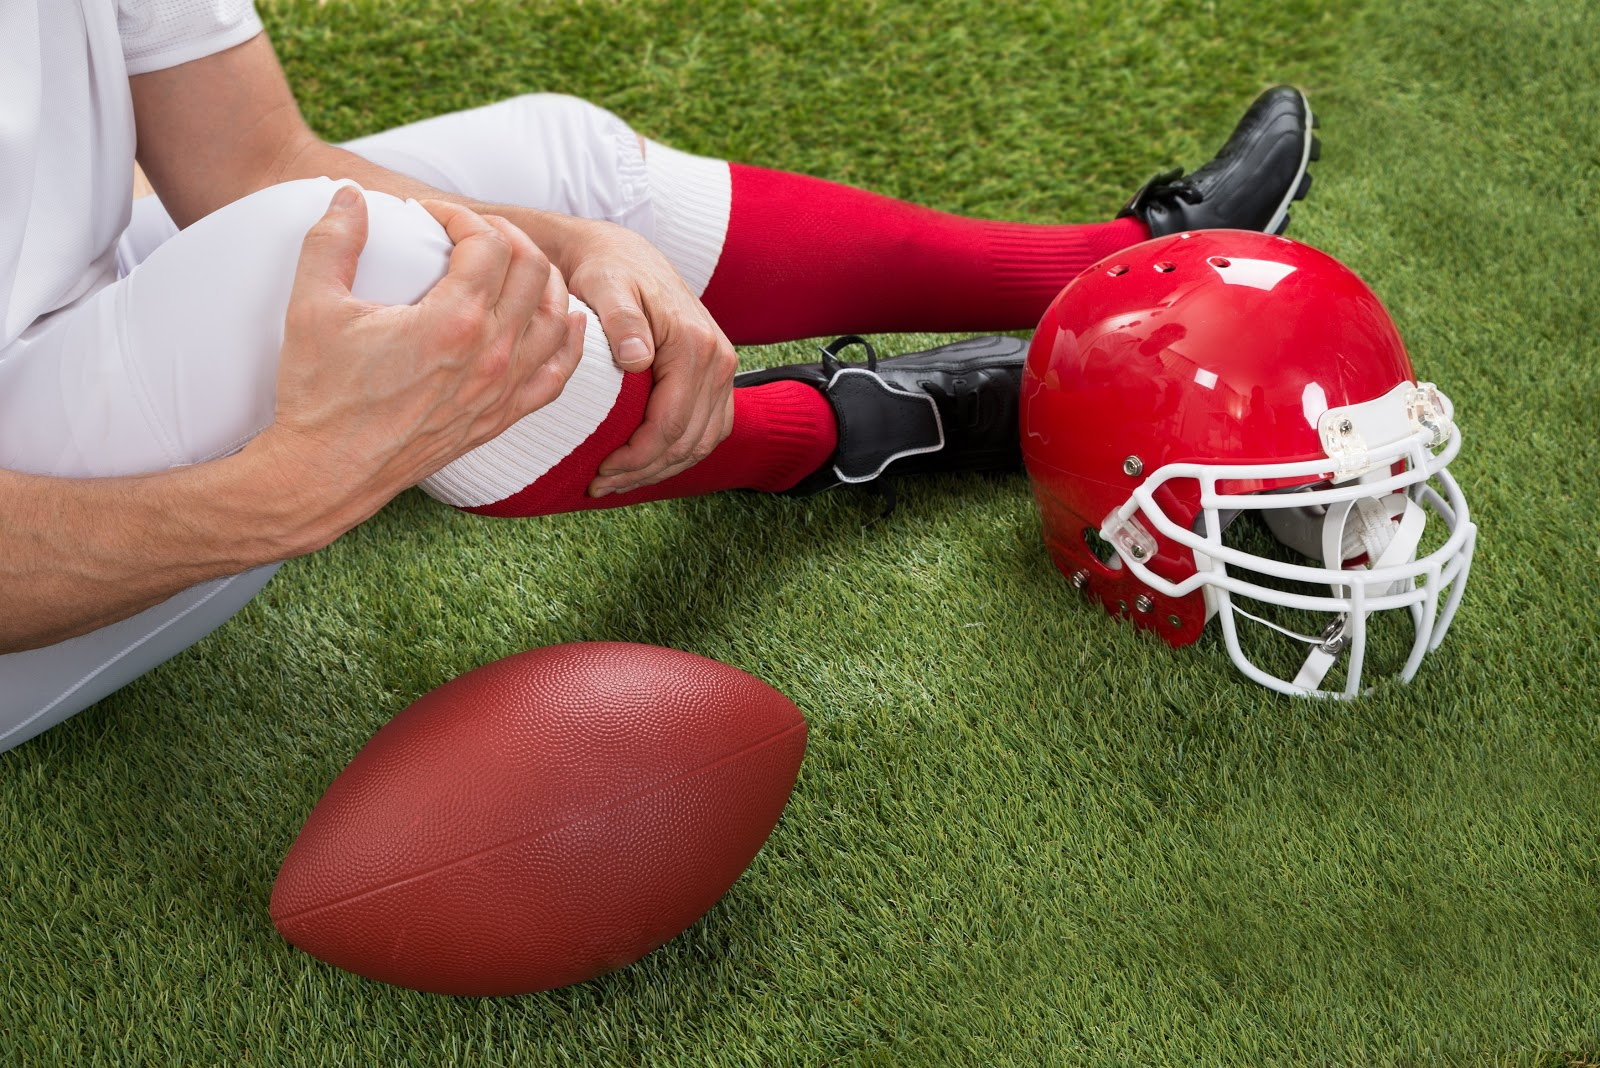 Football player holding his injured knee